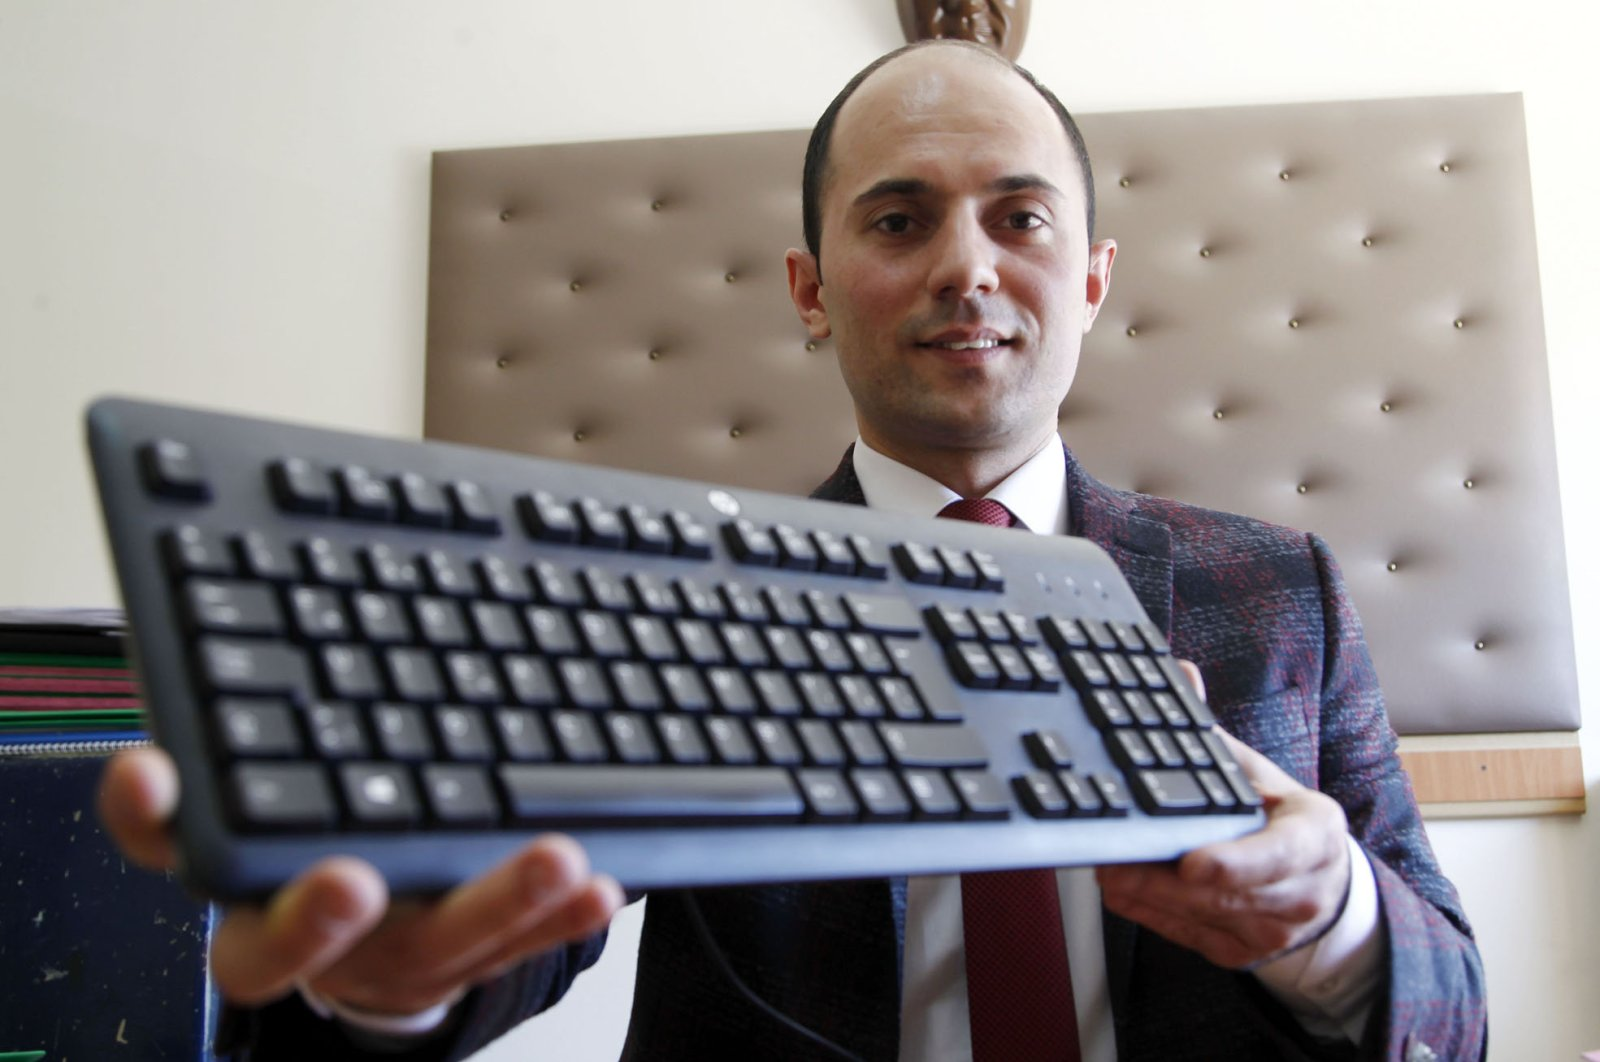 Celal Aşkın, a Justice Ministry employee, became world champion in the senior category by entering 153 words in a minute.(AA Photo)